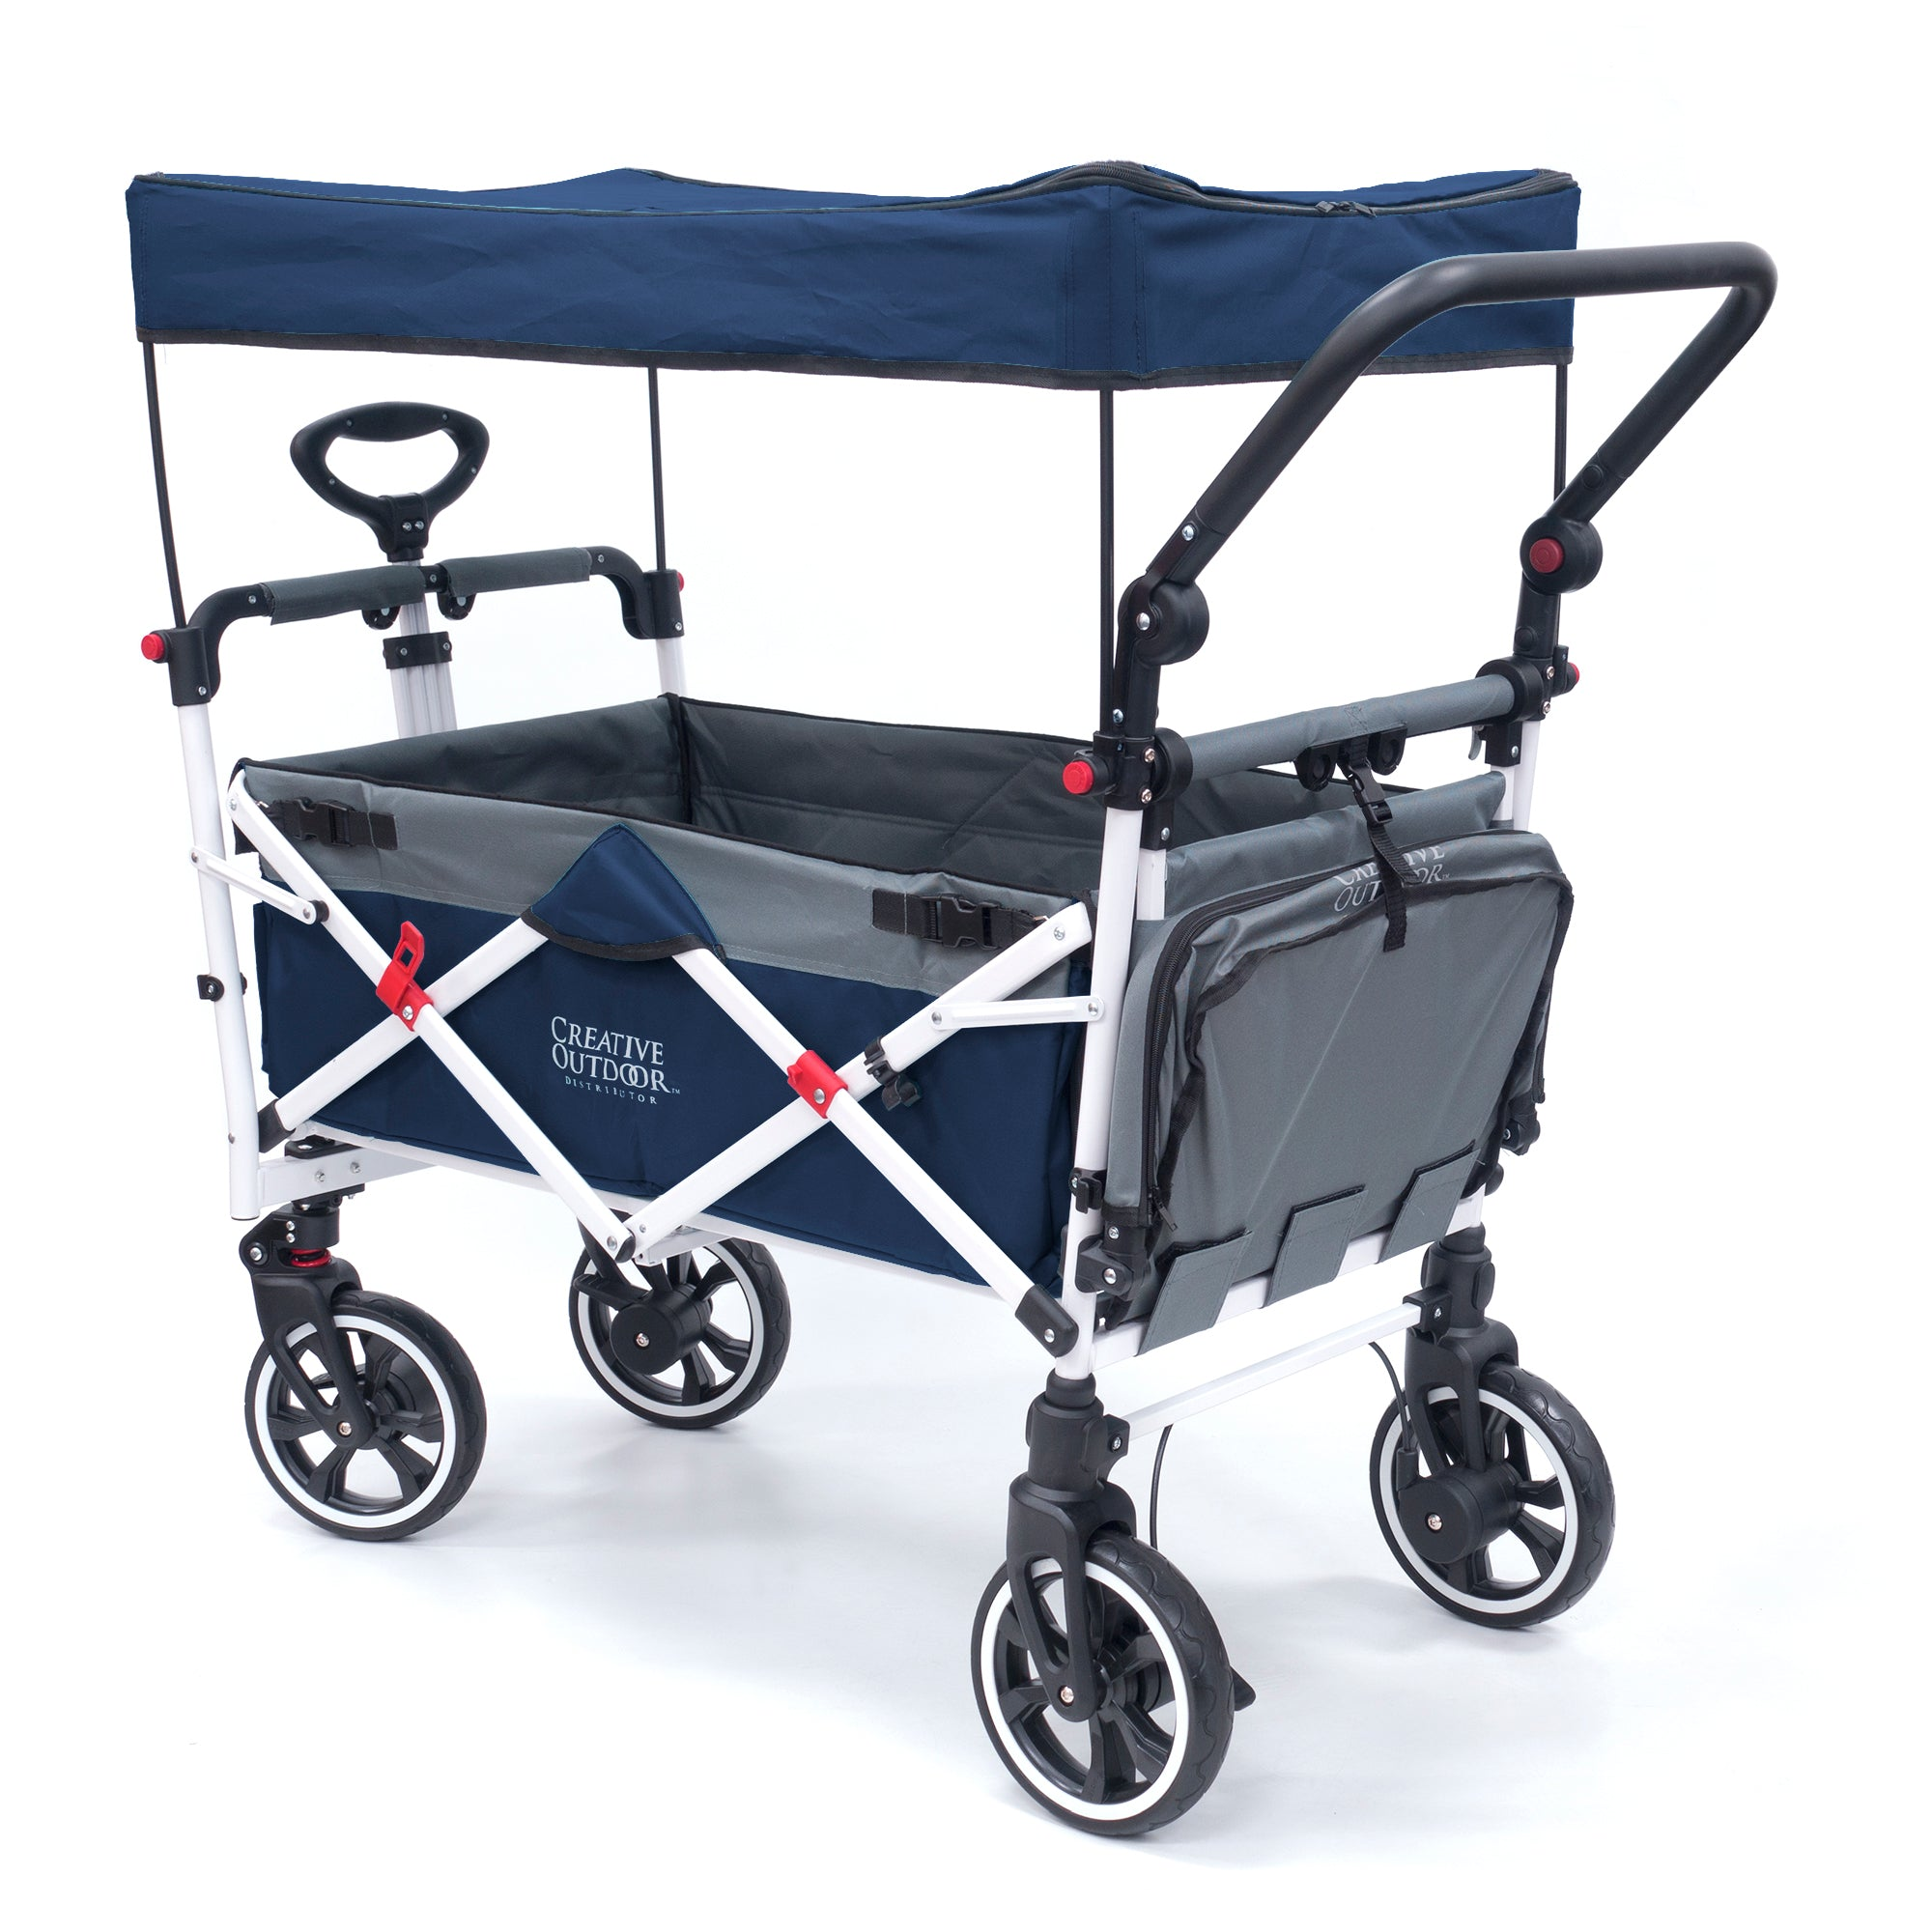 Push Pull Folding Stroller Wagon Titanium Series Navy Blue